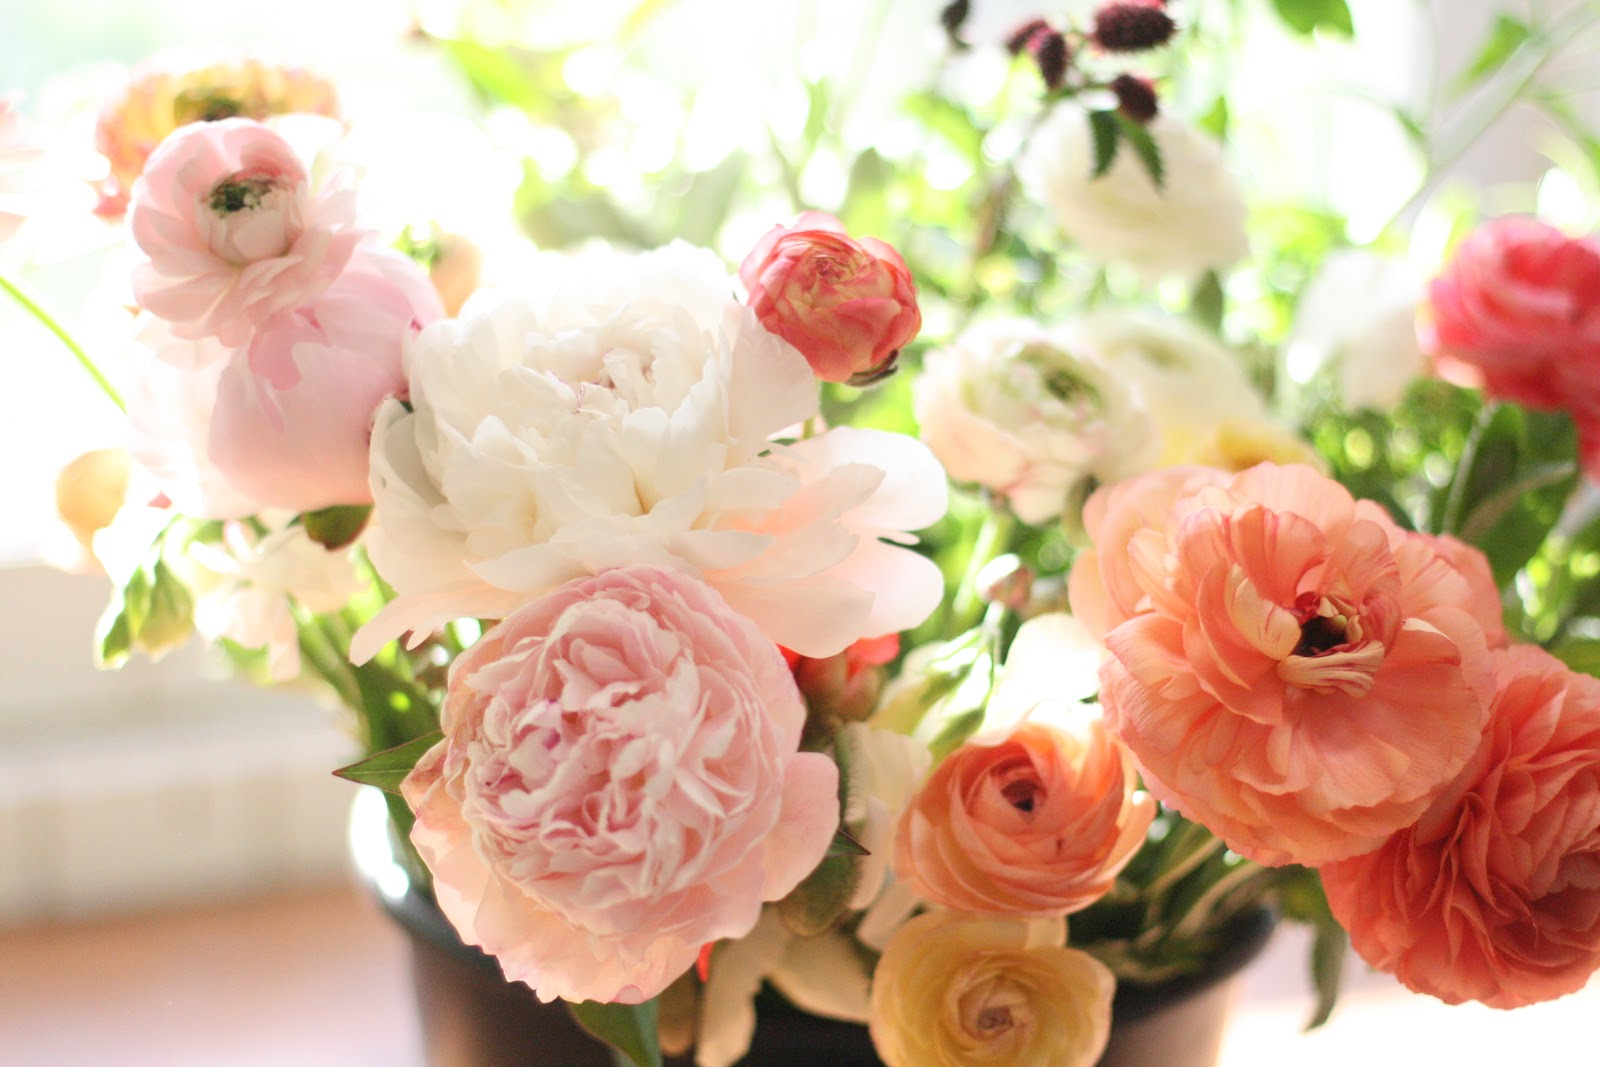 A little helpful how to floret flowers next months issue of growing for market im the flower columnist will include an article on how to make a simple bridal bouquet using garden flowers izmirmasajfo